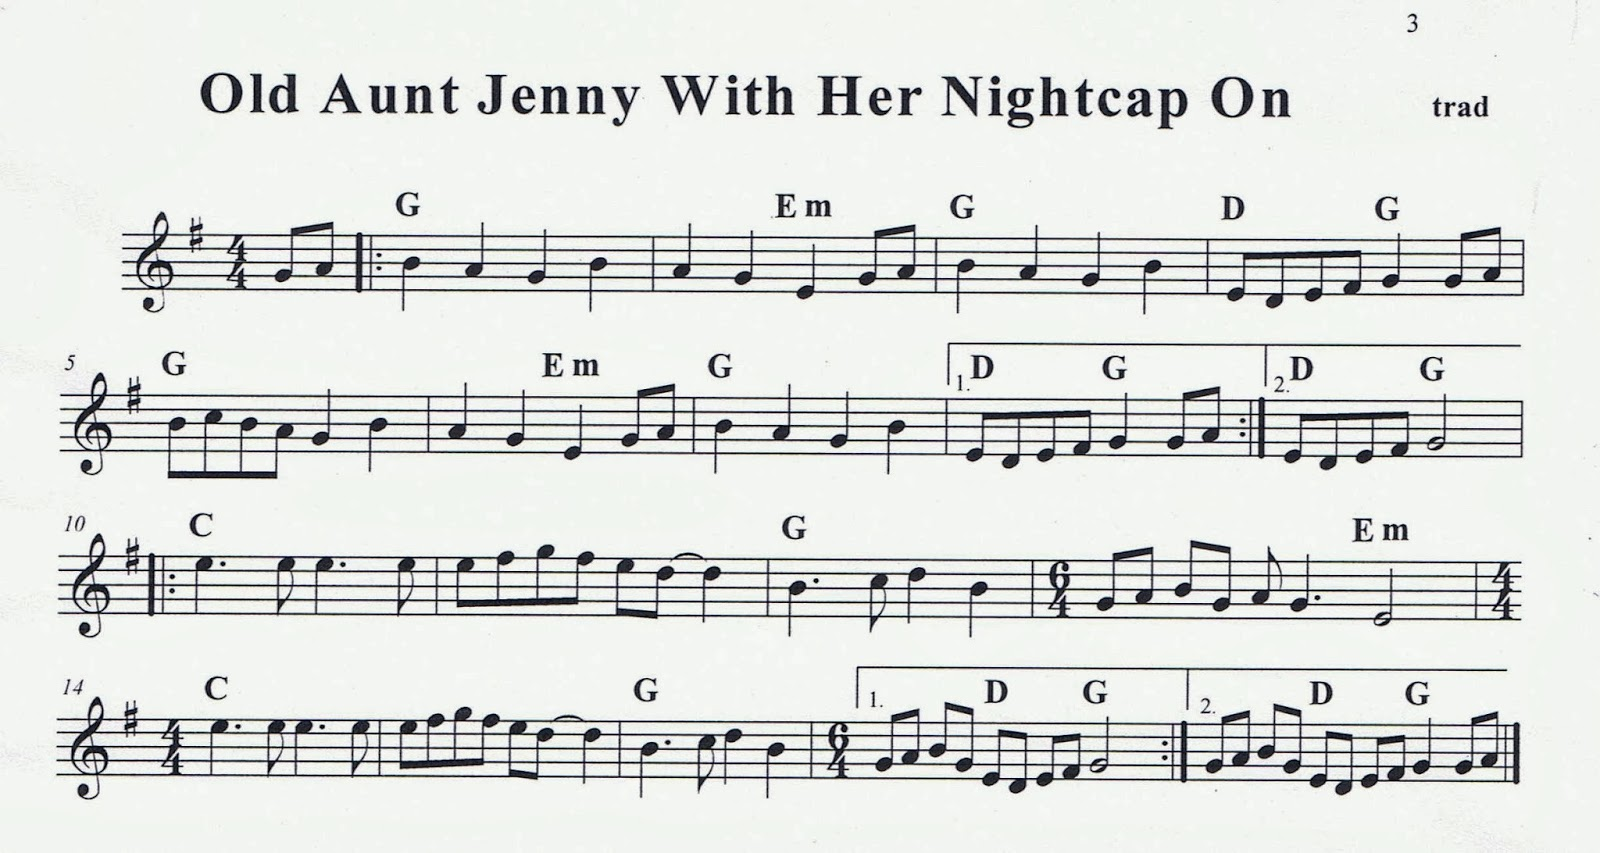 Six water grog old aunt jenny with her nightcap on played slow old aunt jenny with her nightcap on played slow with sheet music notation transcription biocorpaavc Image collections